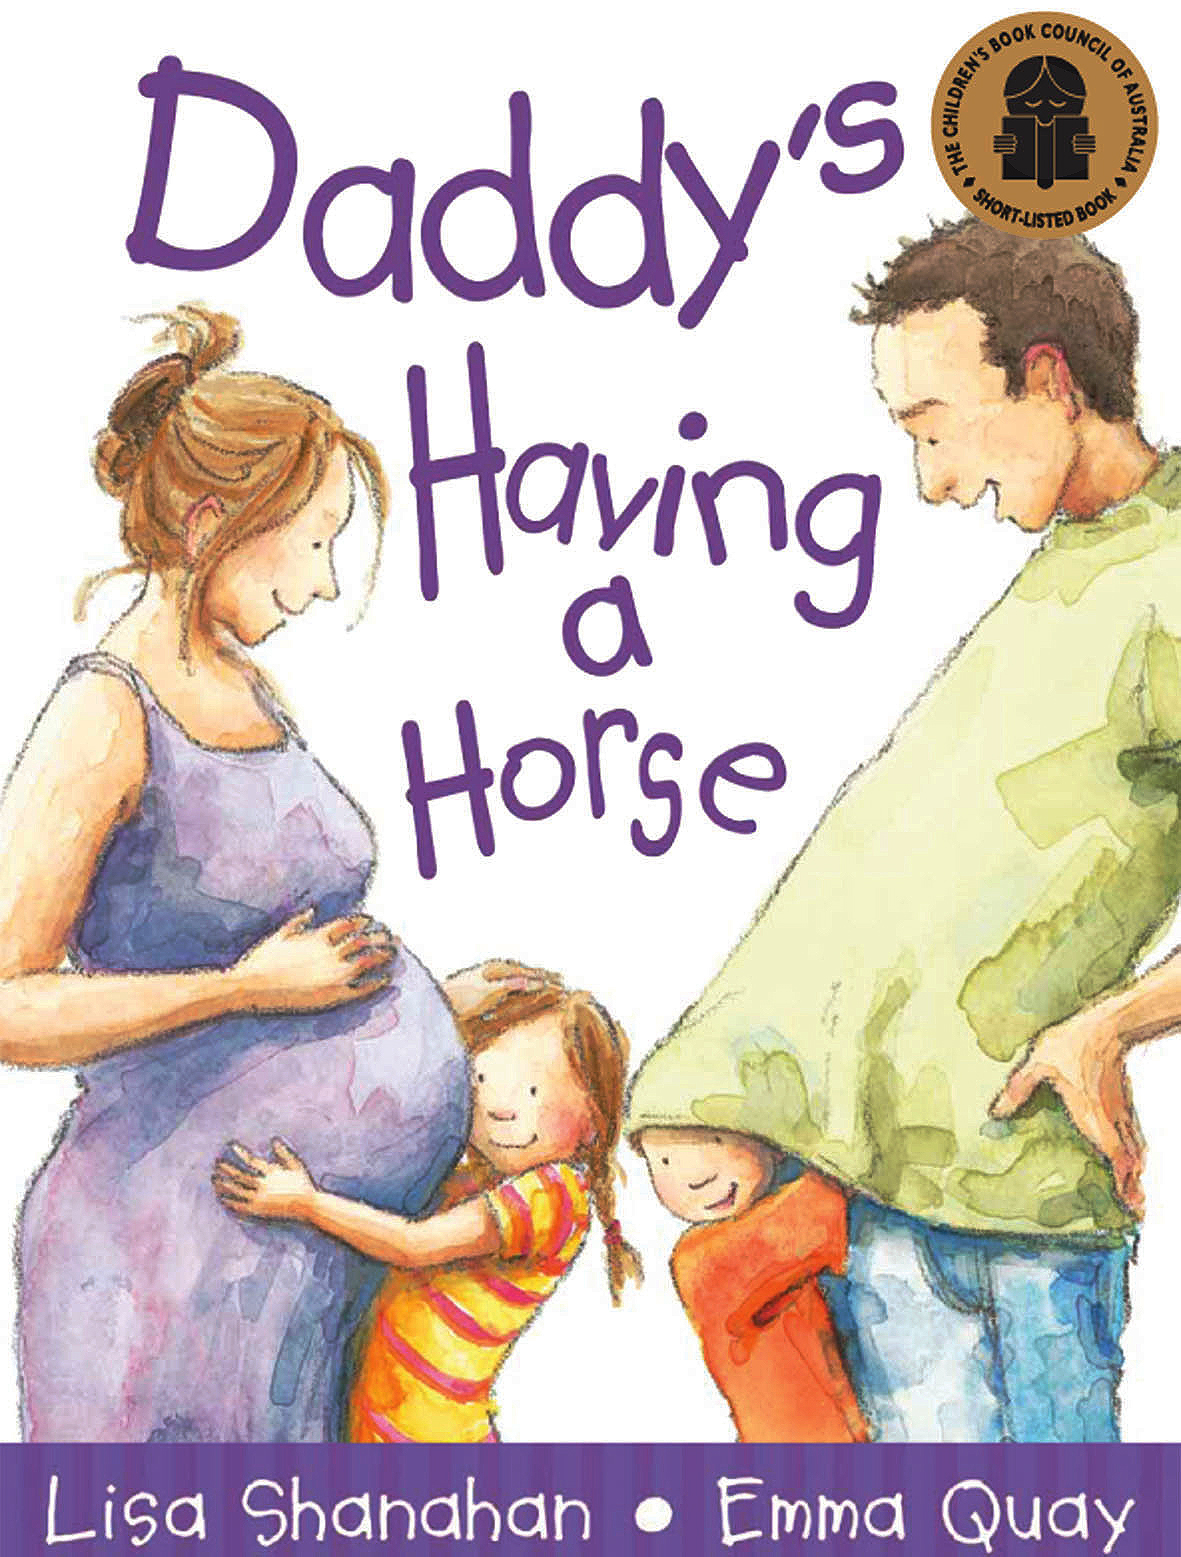 Cover of DADDY'S HAVING A HORSE by Lisa Shanahan and Emma Quay